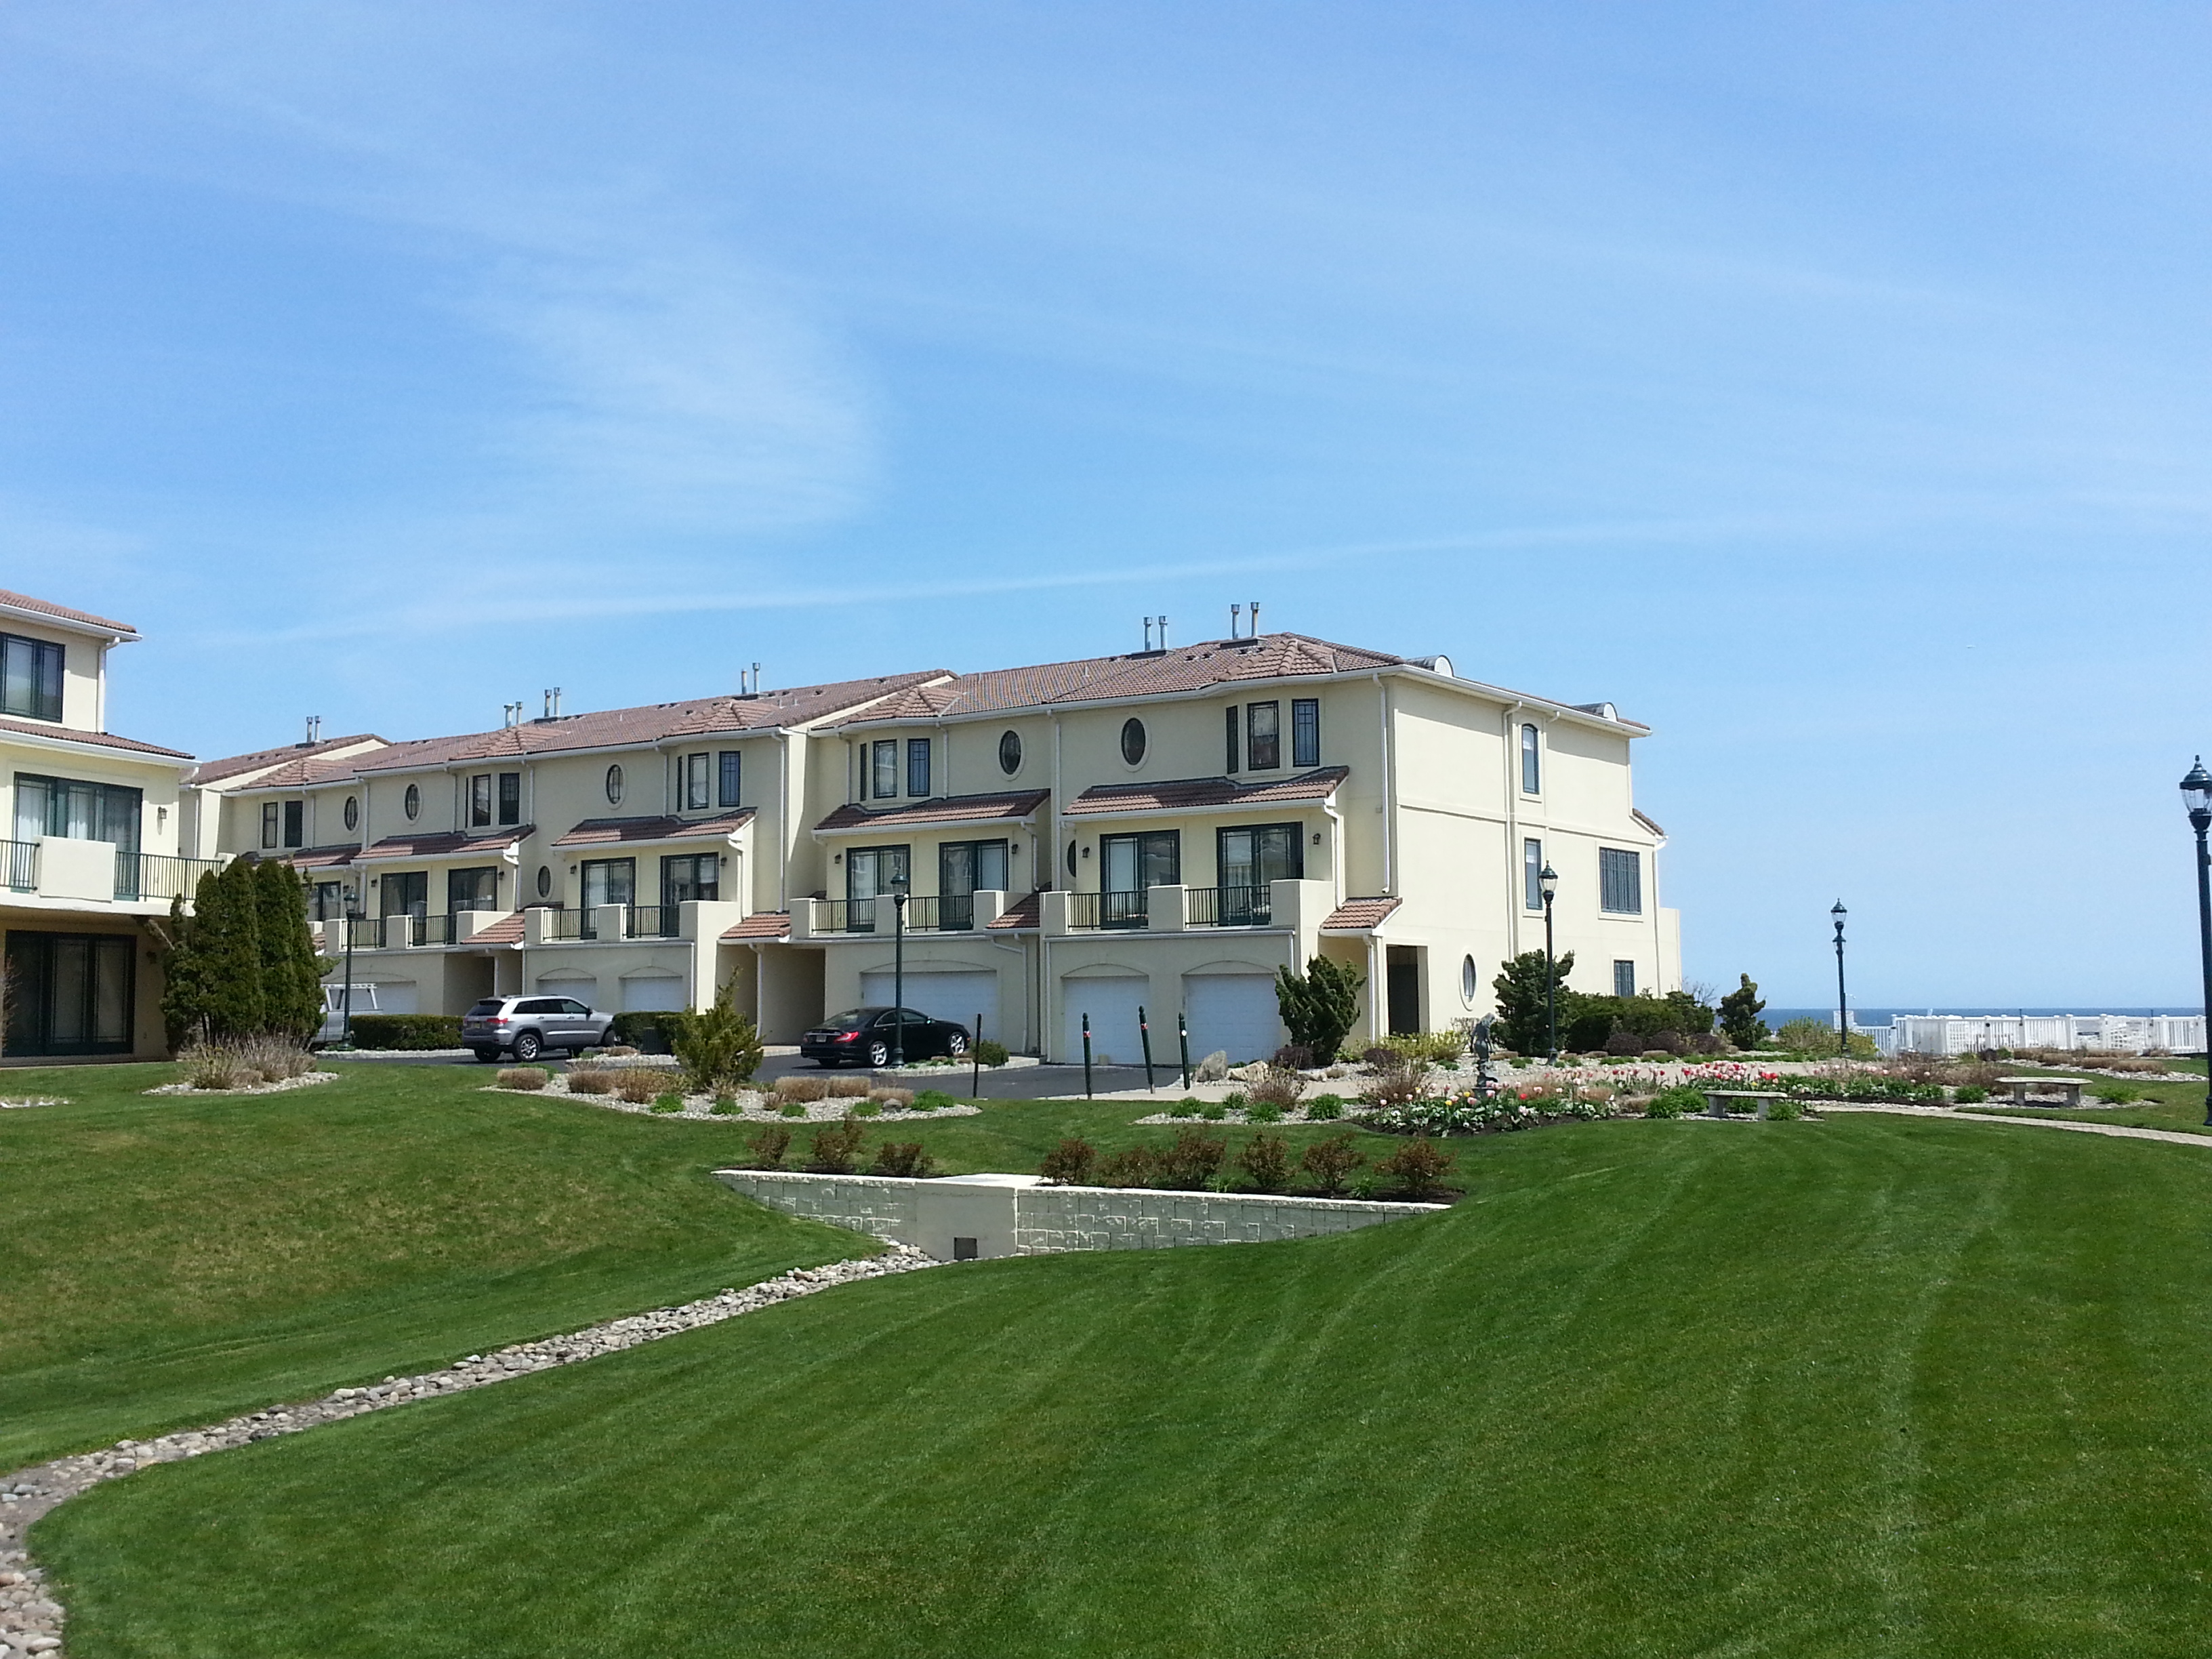 The Villas at Harbour Island is a beachfront community of upscale condos in West End Long Branch